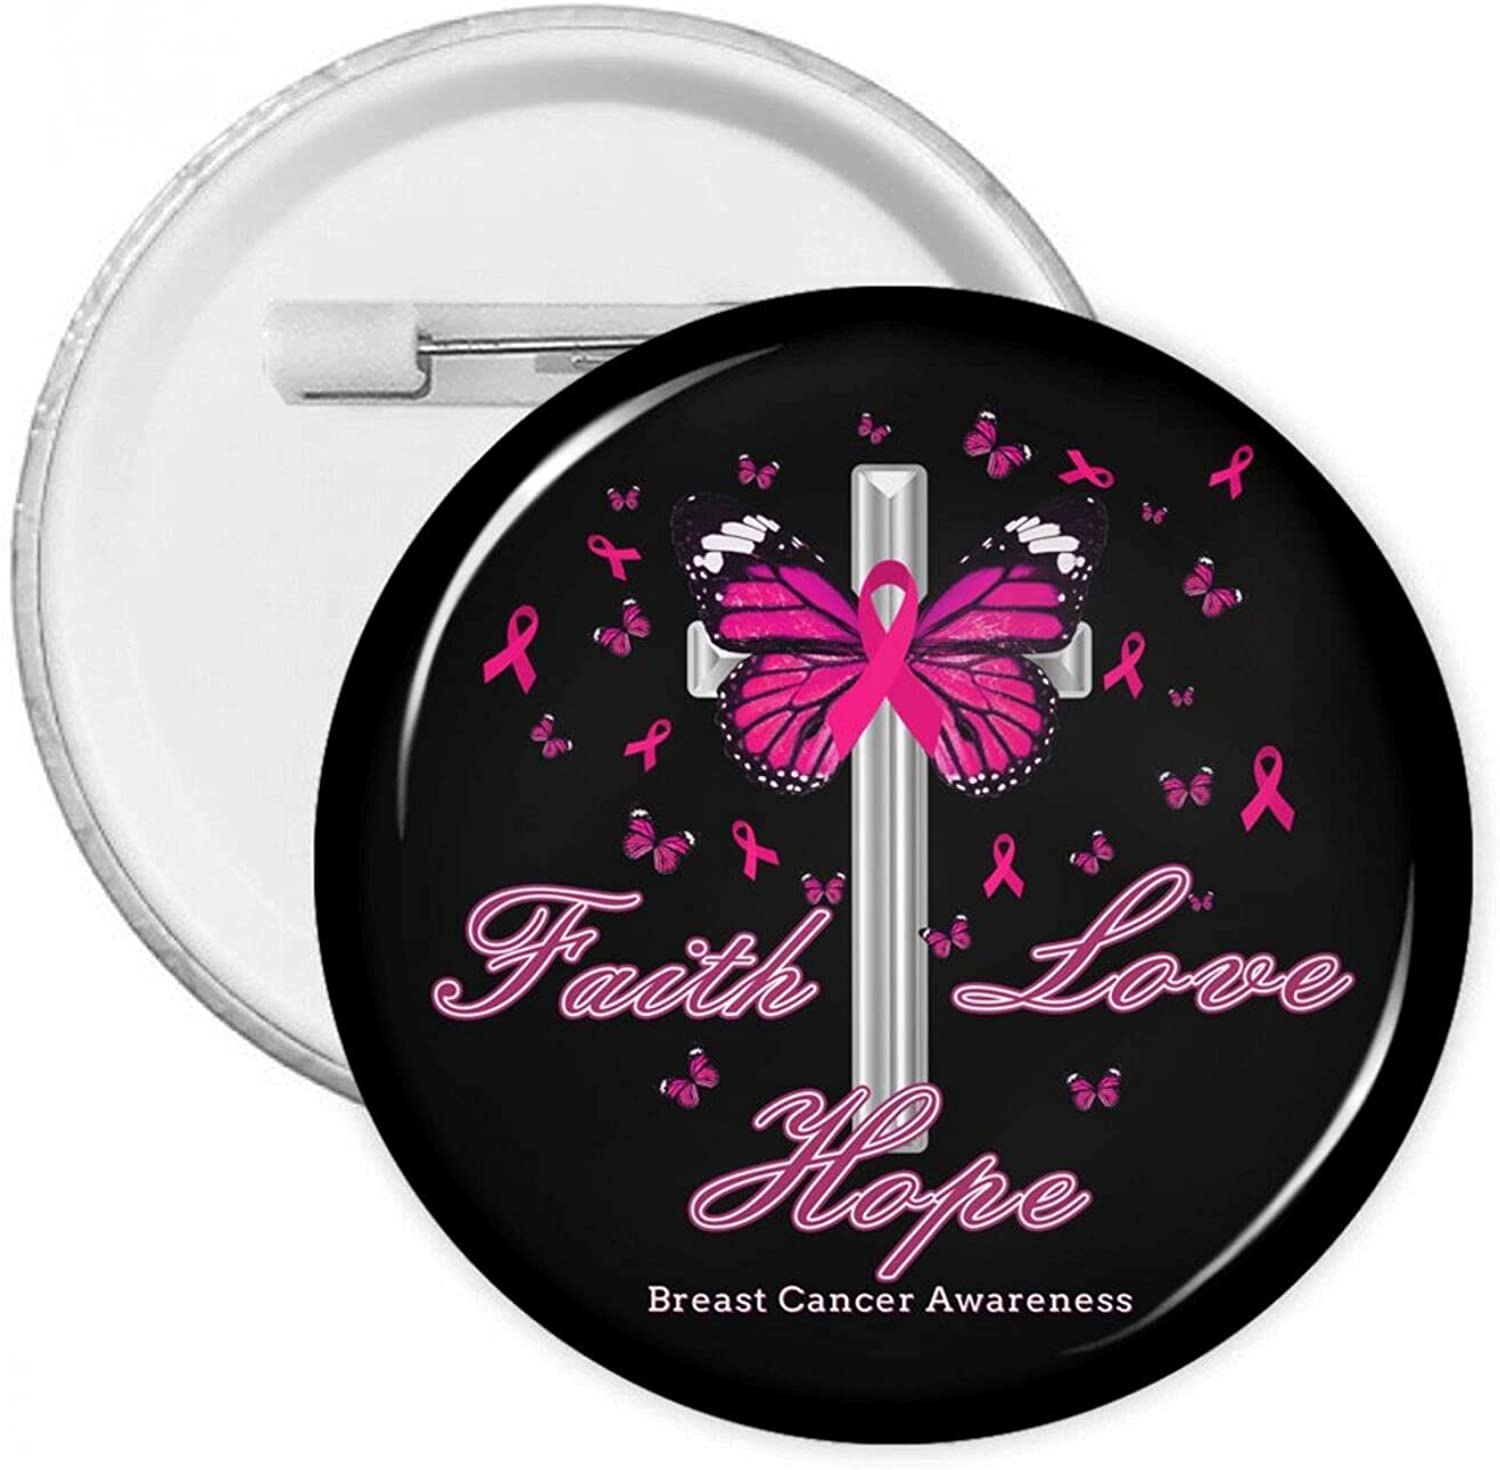 Faith Love Hope Breast Cancer Awareness-2 Badges Genuine Free Max 86% OFF Shipping Bu Personality